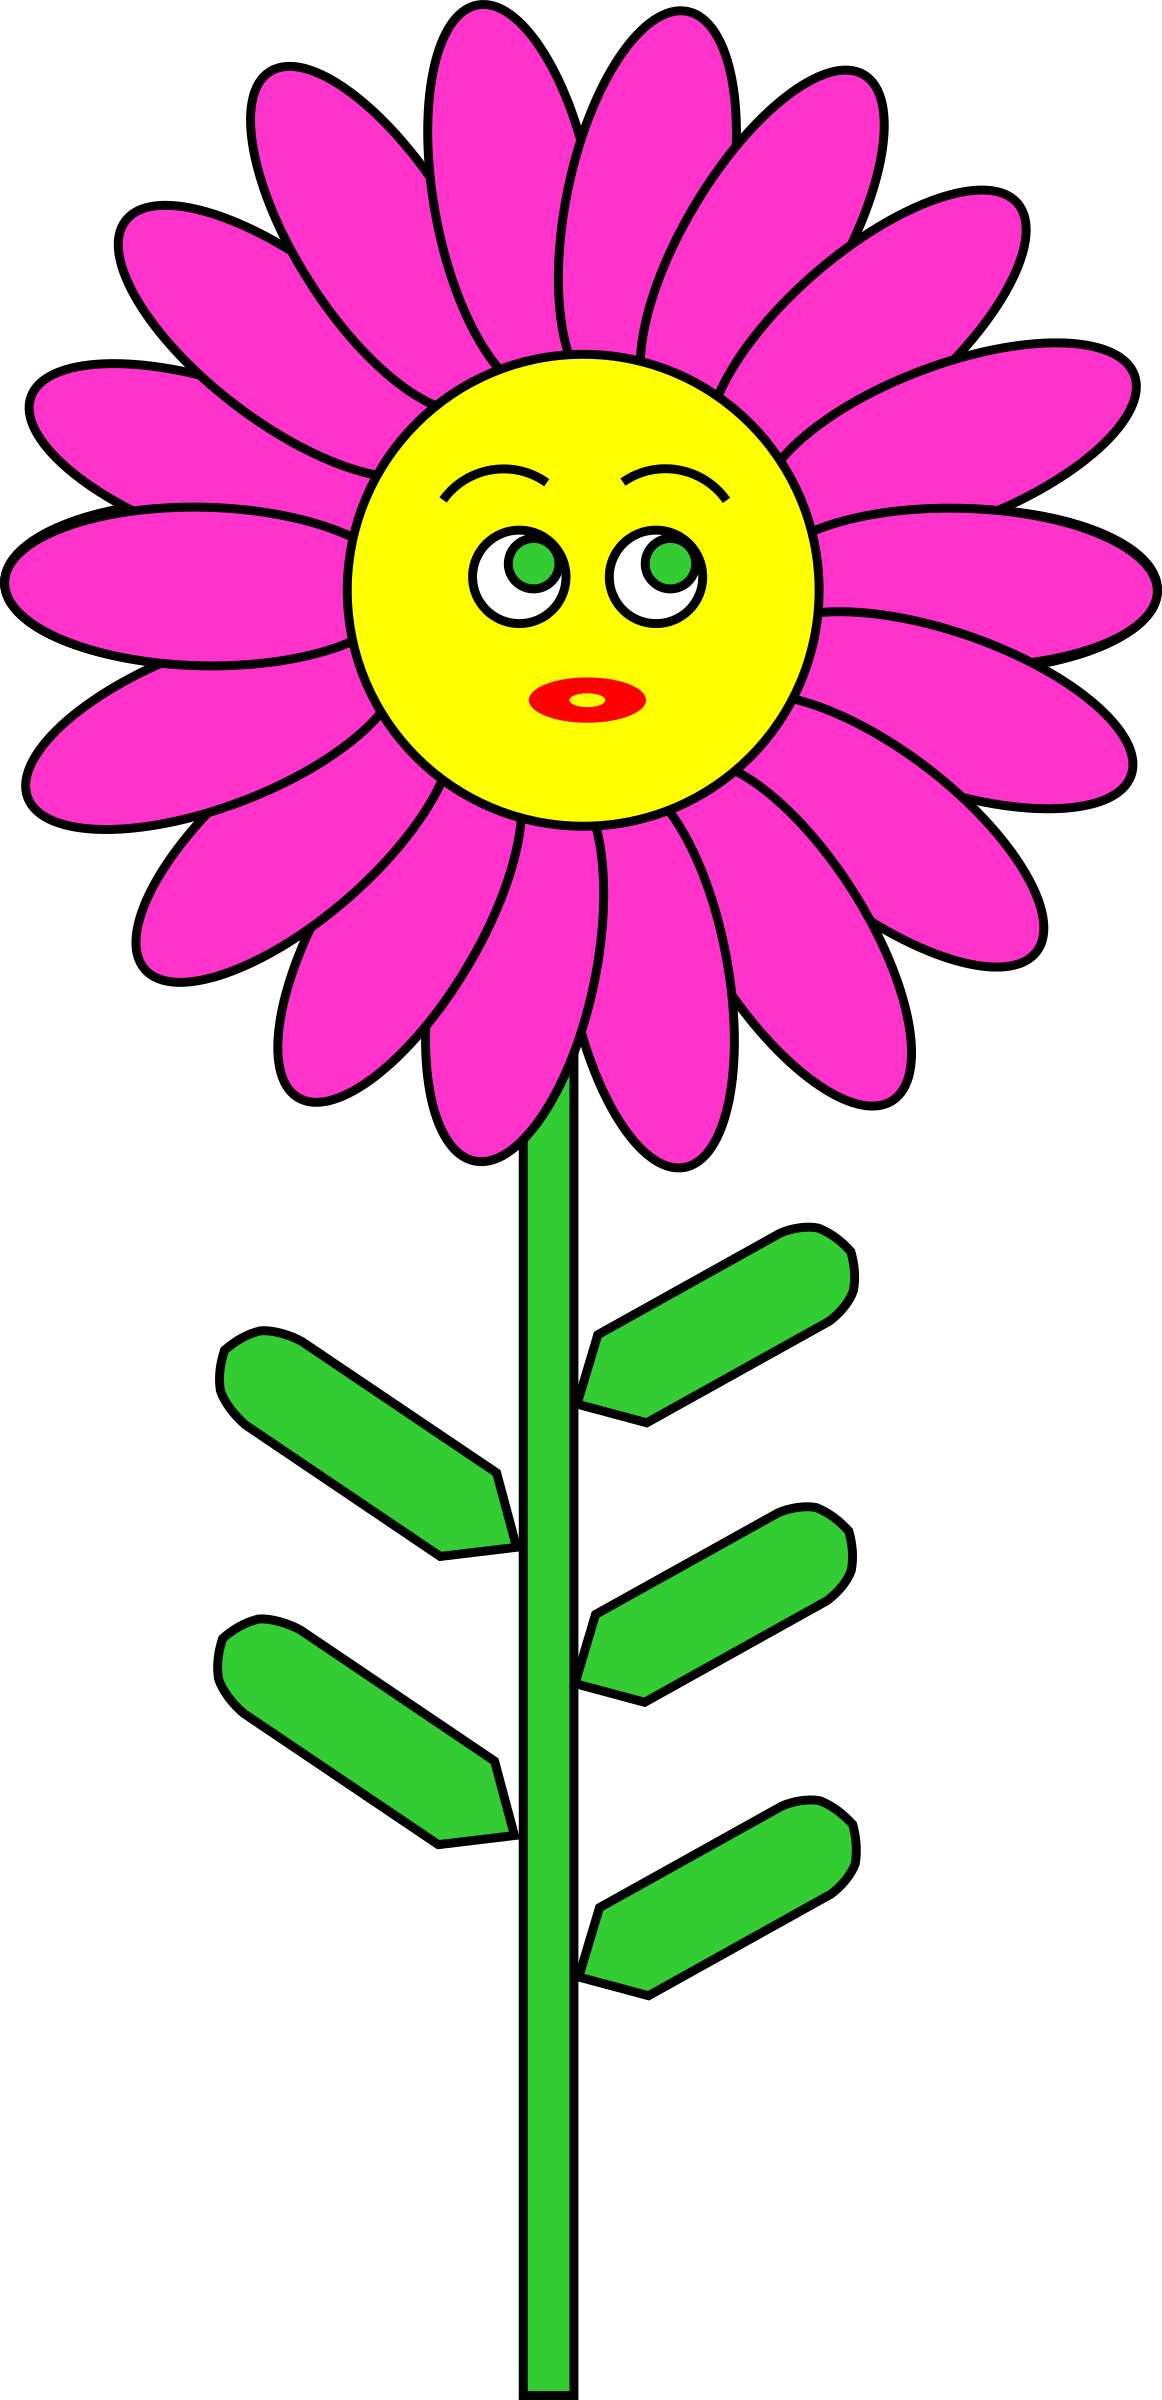 Flowers clipart smile. Purple flower with big